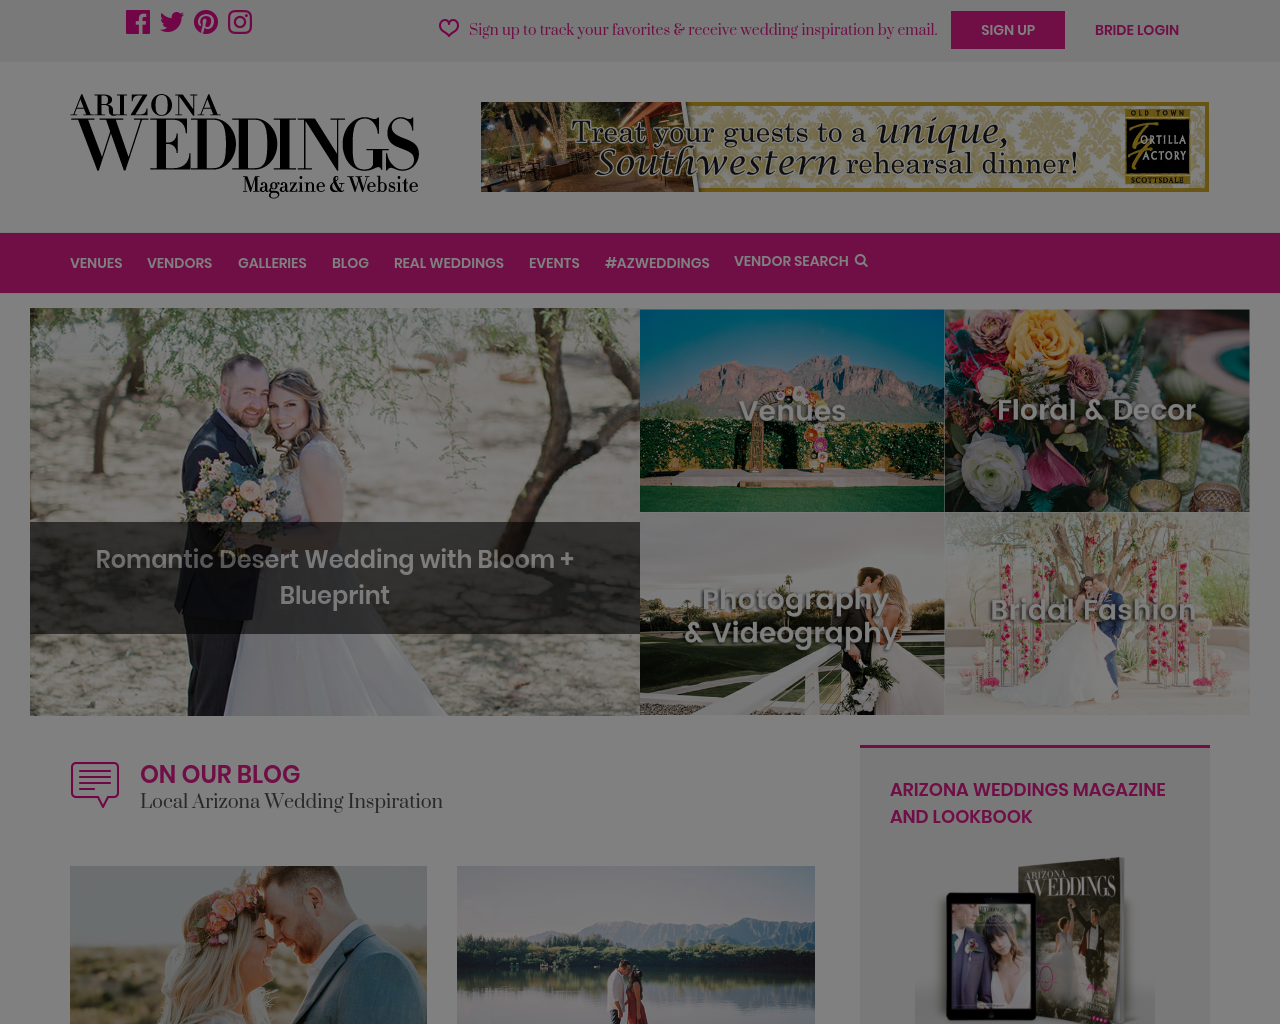 Arizona-Weddings-Advertising-Reviews-Pricing